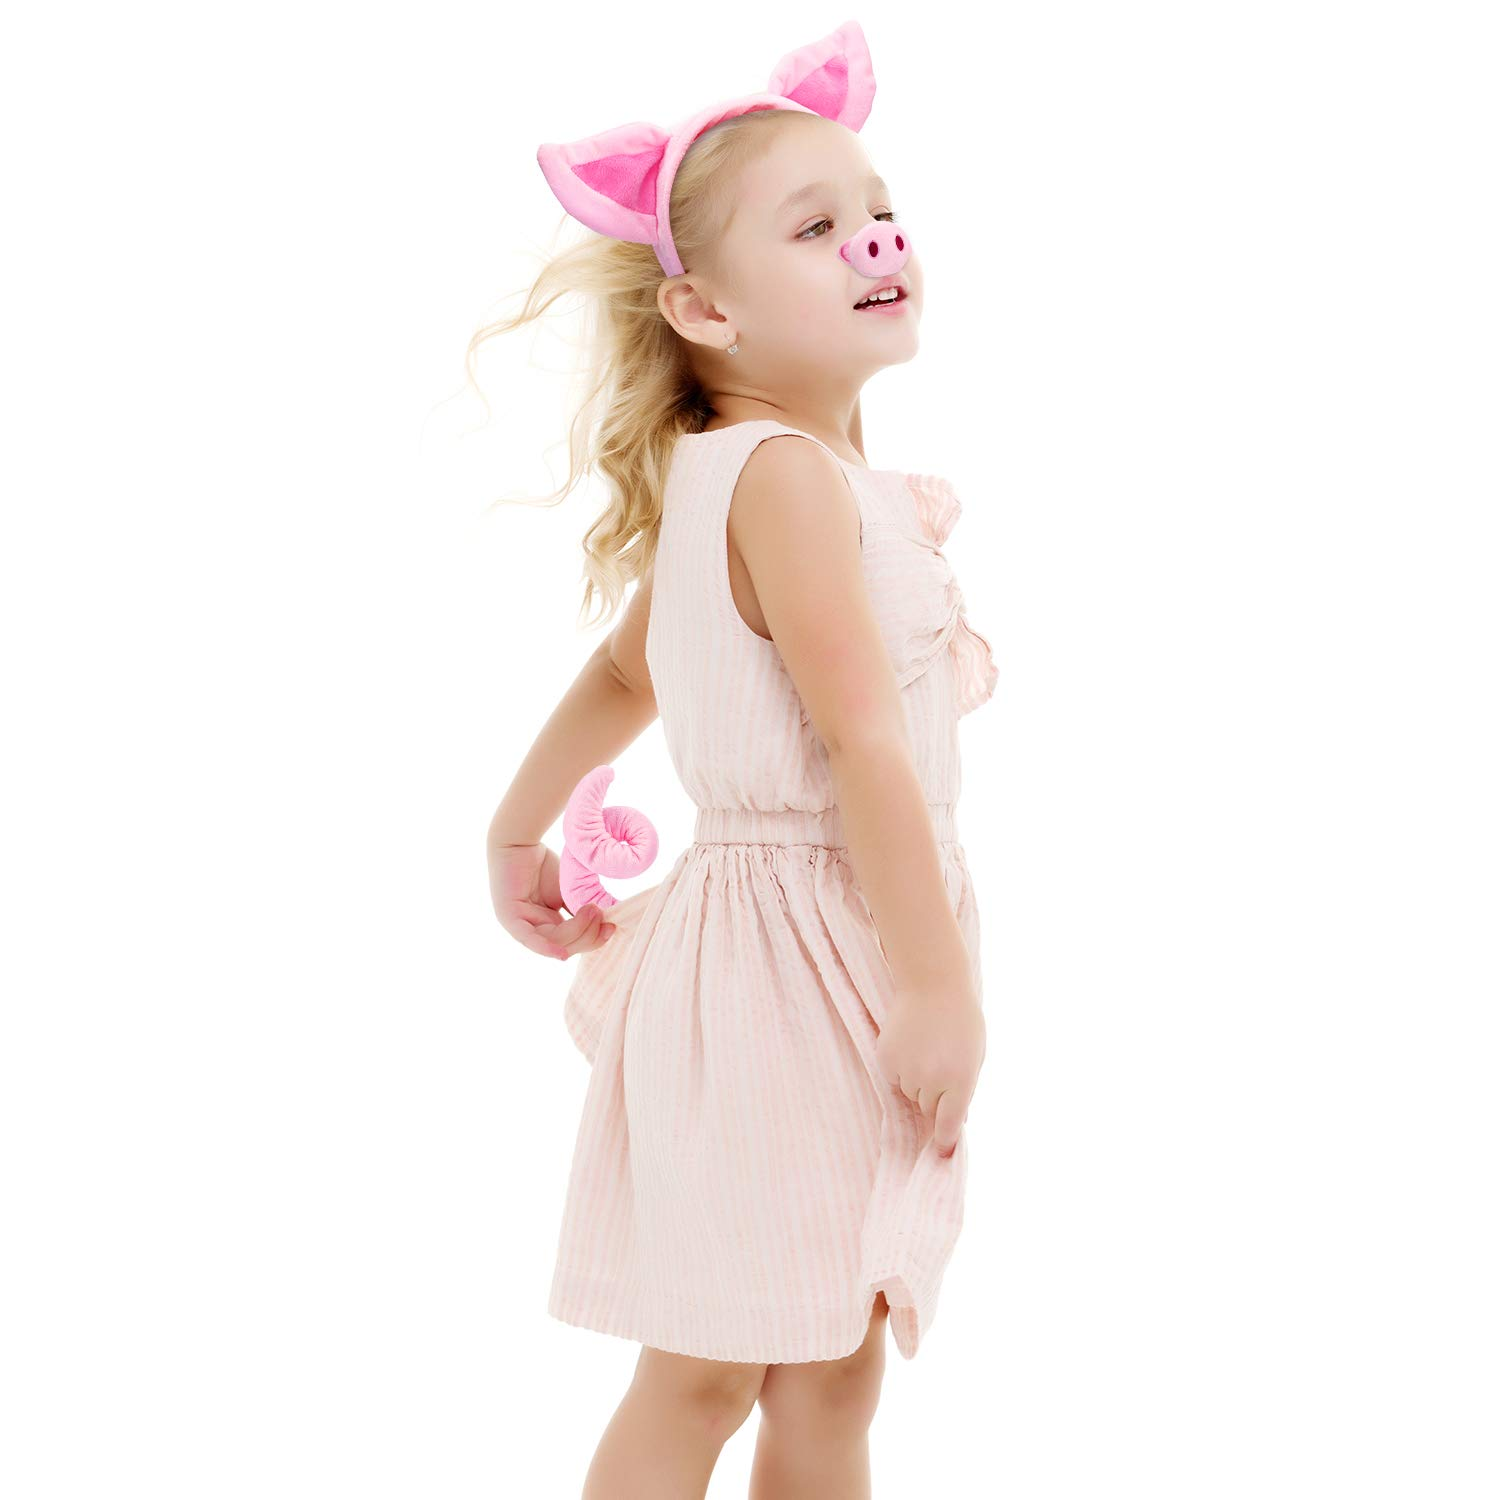 Animal Costume Set Animal Ears Nose Tail and Bow Tie Animal Fancy Dress Costume Kit Accessories for Kids Lion Costume